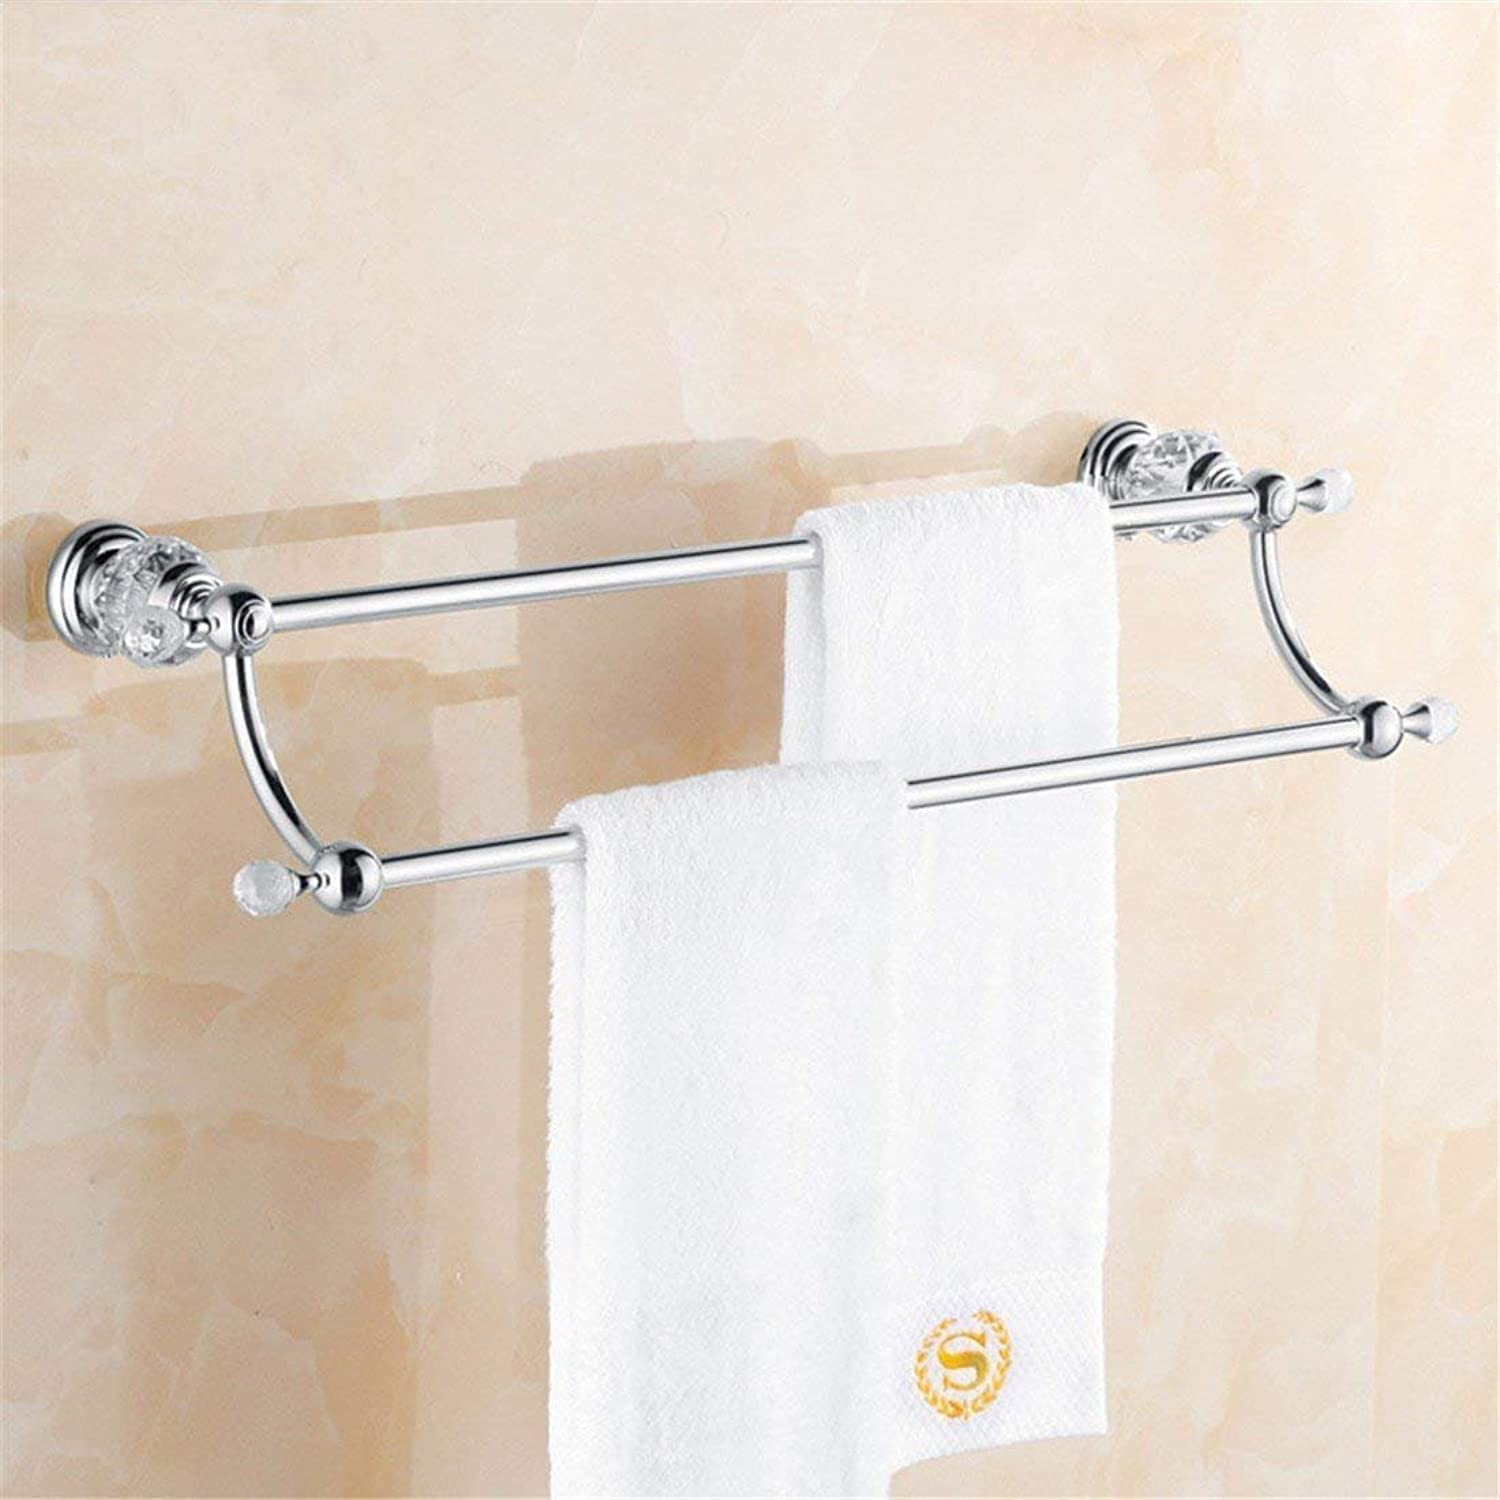 Contemporary Chrome Crystal Accessories of Costumes of Bains Dry-Towels Bar Towels Toilet Brush,Placement Frame Double Pole